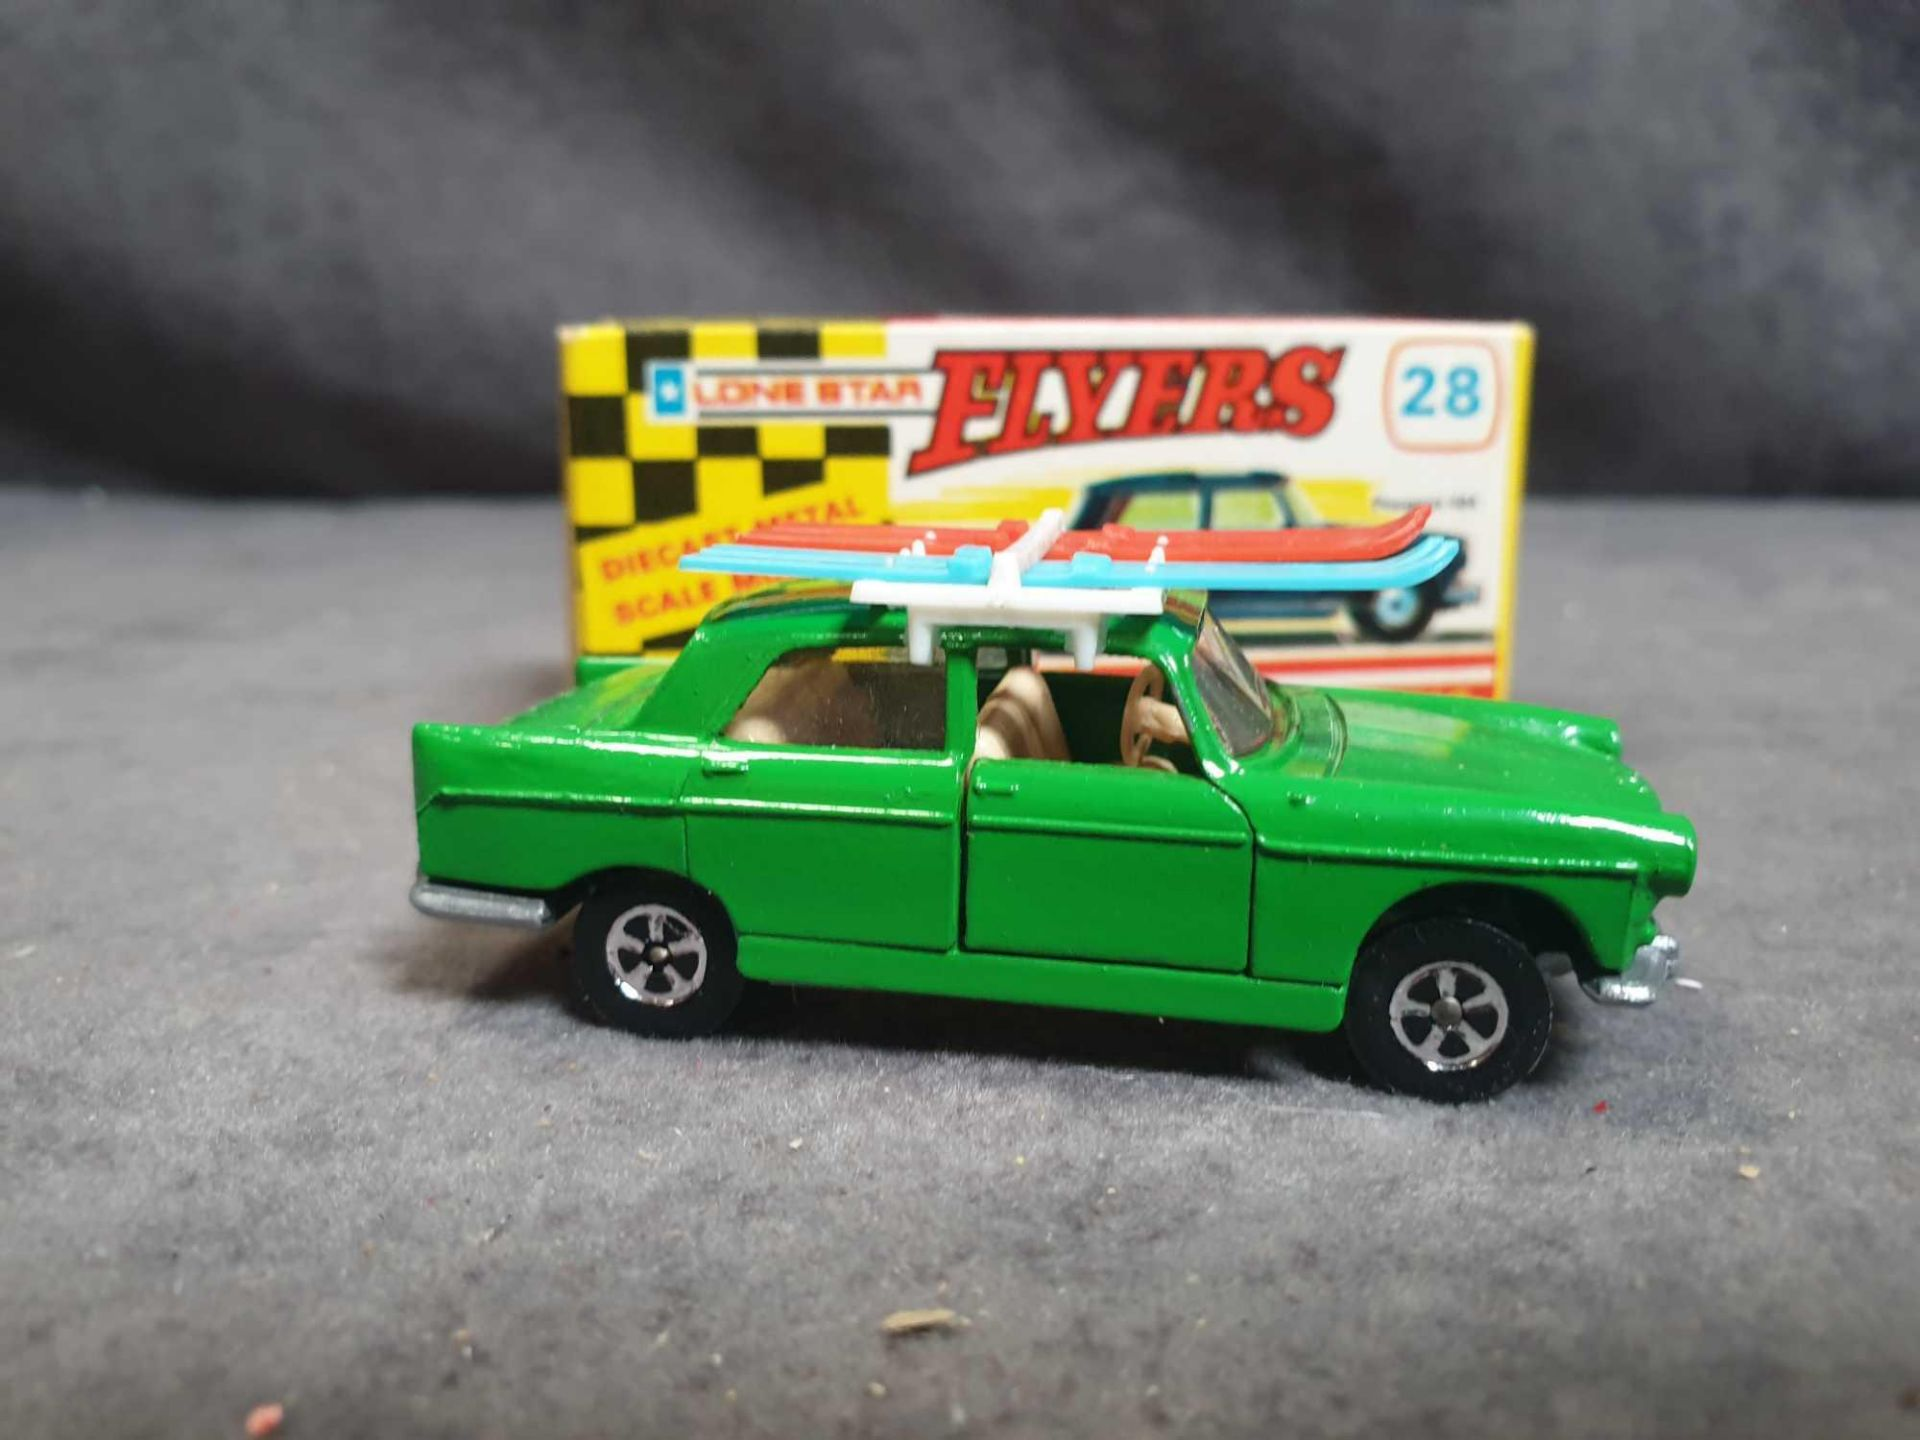 Mint Lone Star Flyers #28 Peugeot 404 Green With Skis Diecast Vehicle With Box - Image 3 of 3